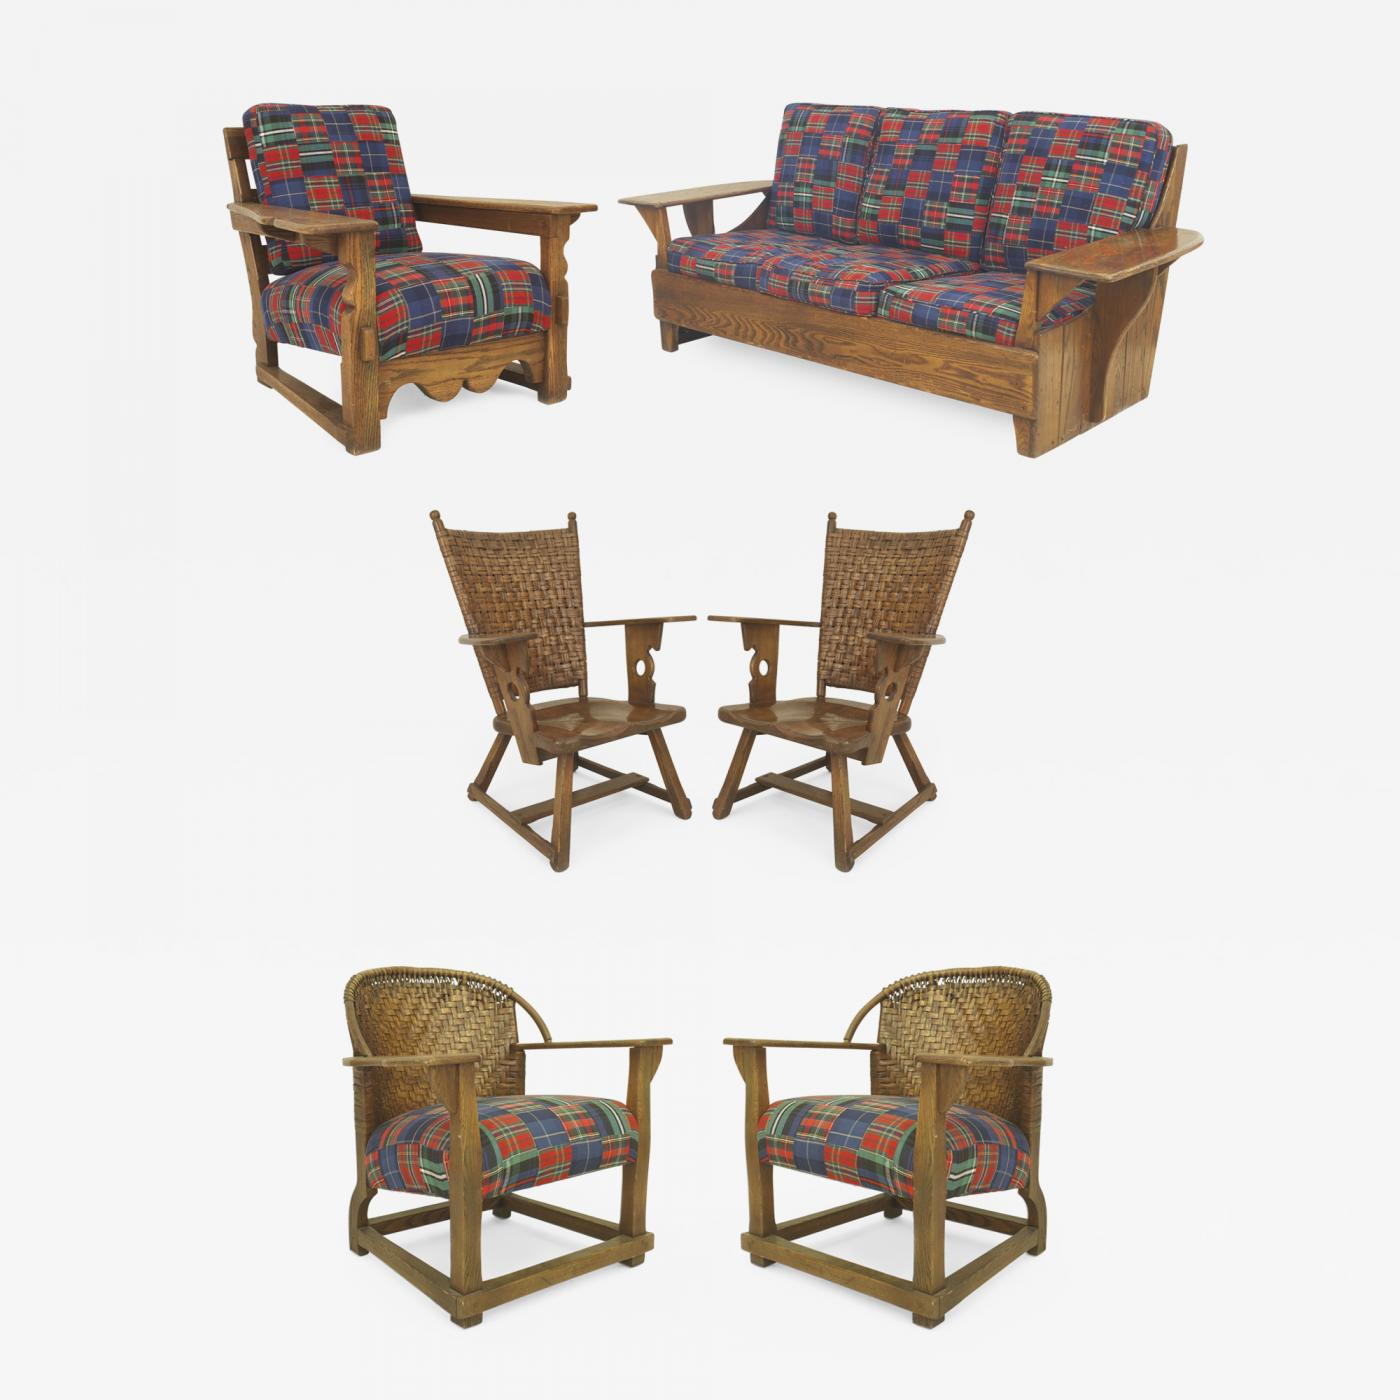 6-Piece Rustic Old Hickory Mission-Style Living Room Set